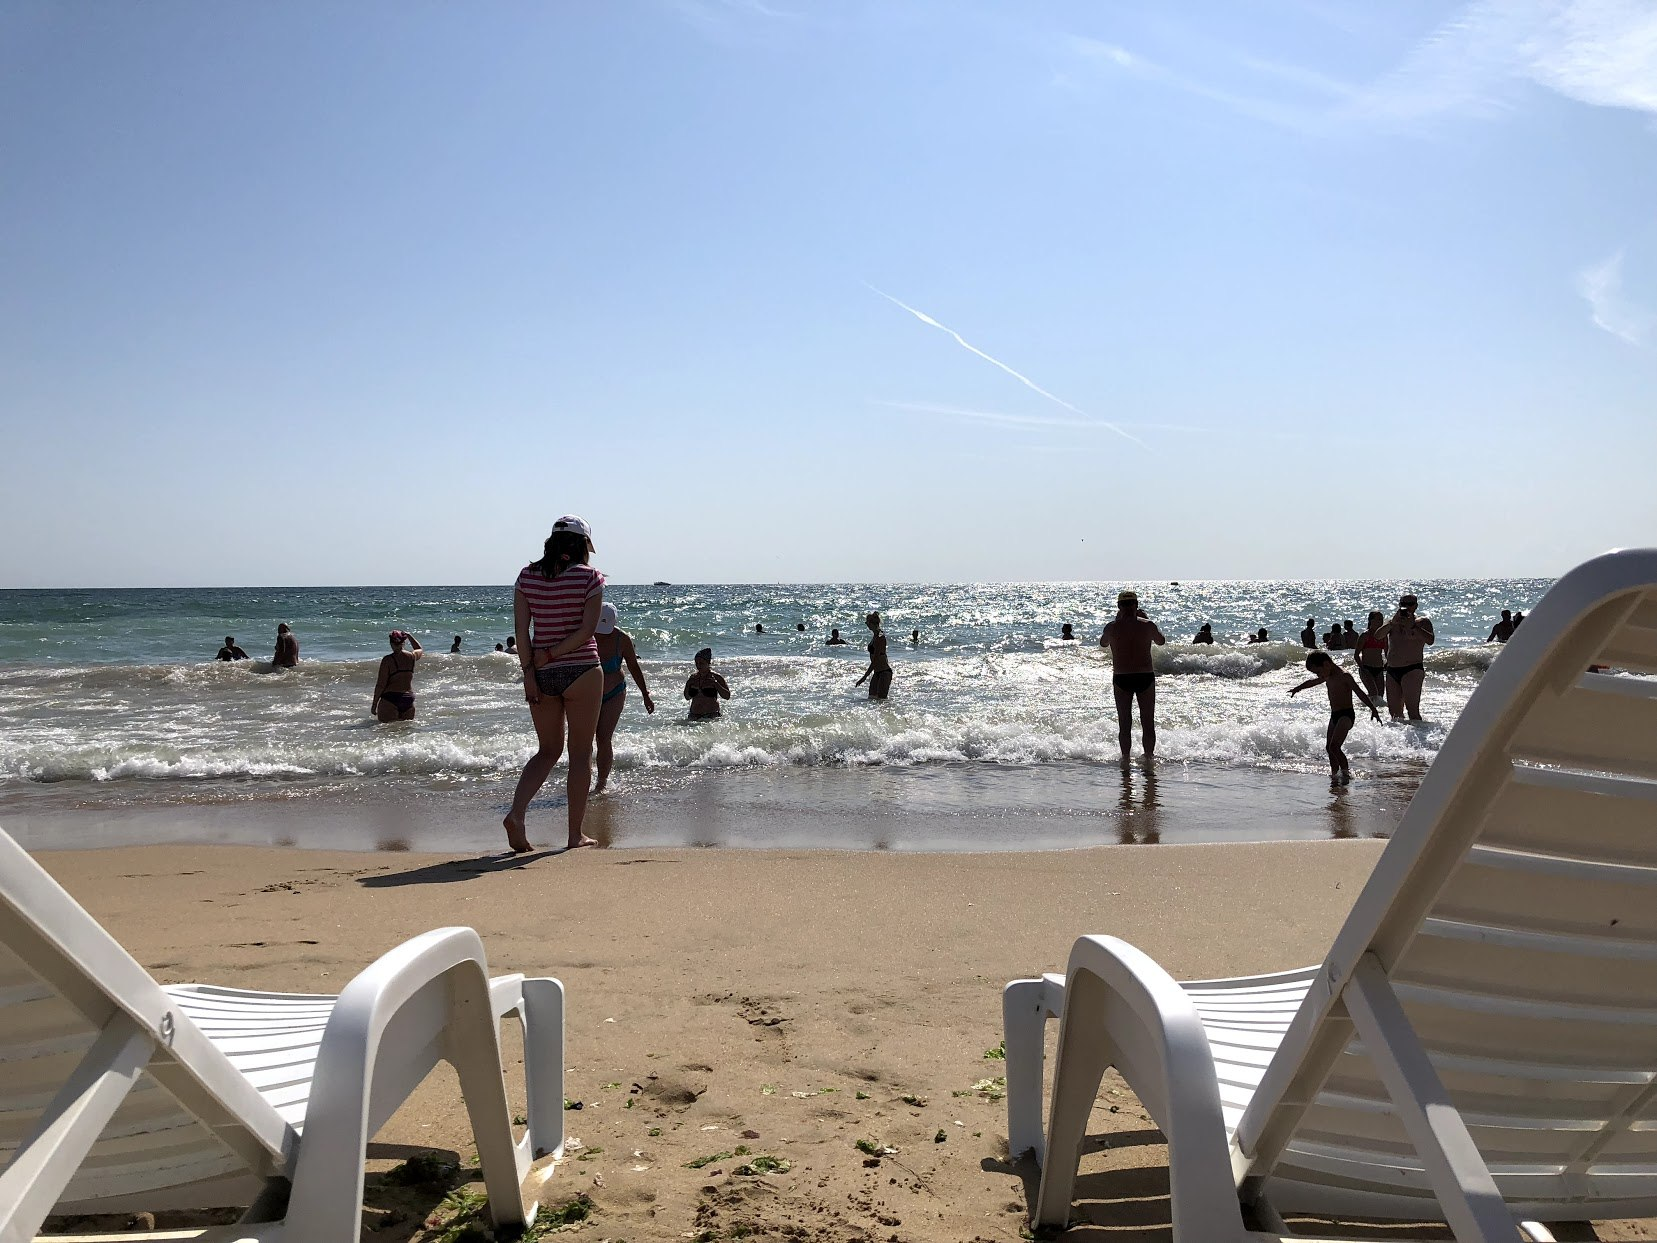 Saxa Beach is one of many Bulgaria beaches to choose from